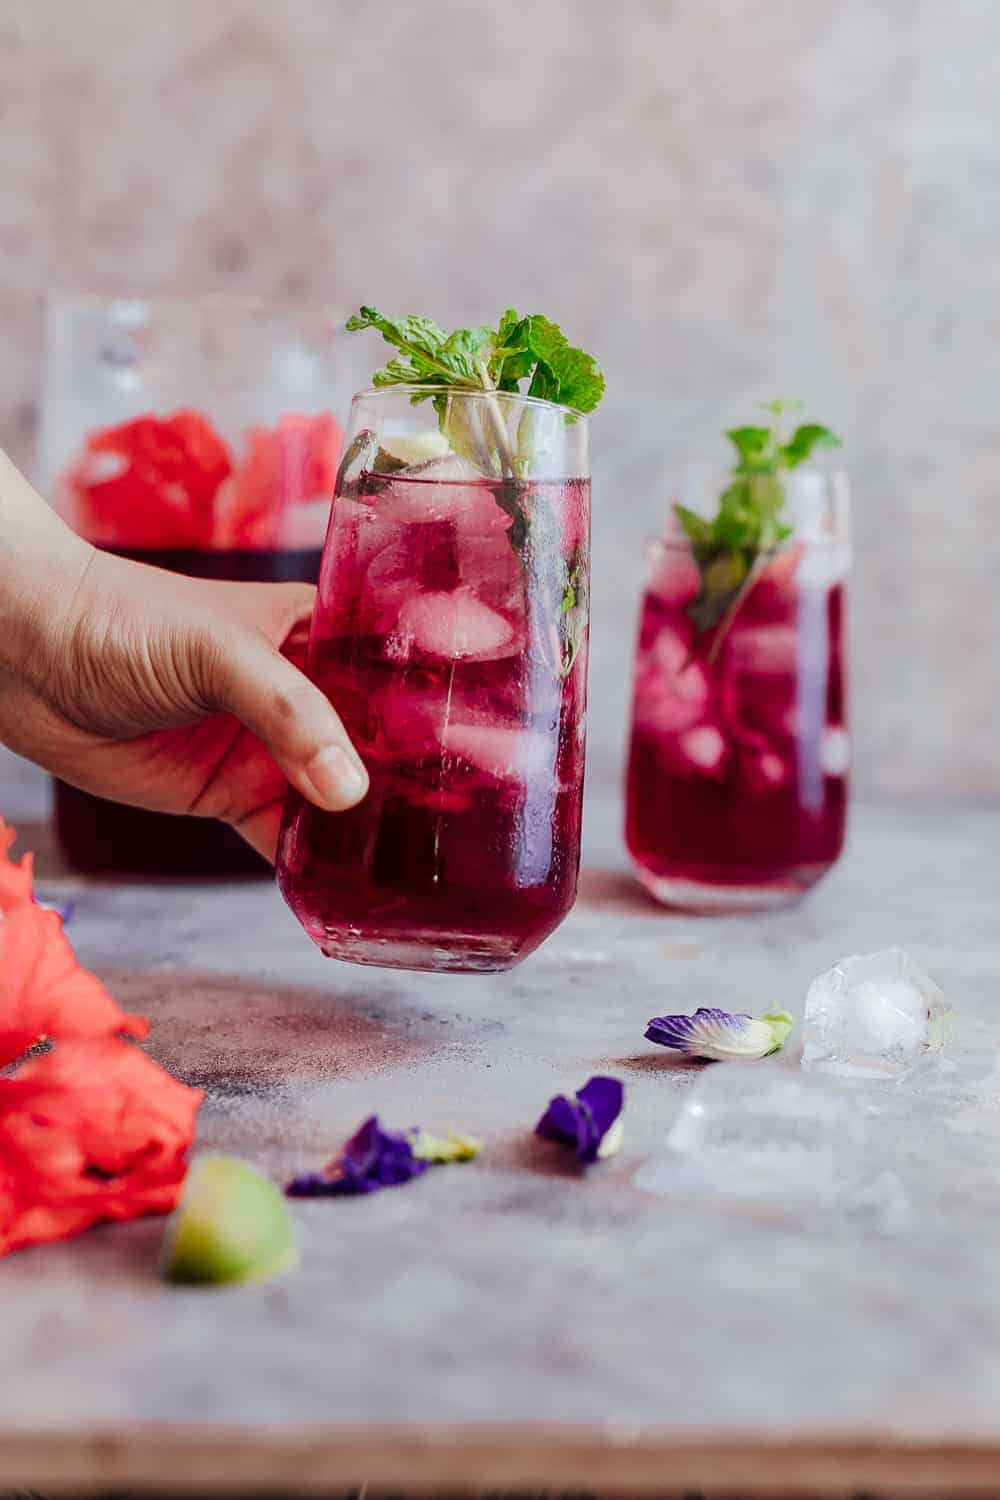 How to make hibiscus tea benefits and side effects picking up a glass of chilled hibiscus tea which is served with mint leaves and lemon izmirmasajfo